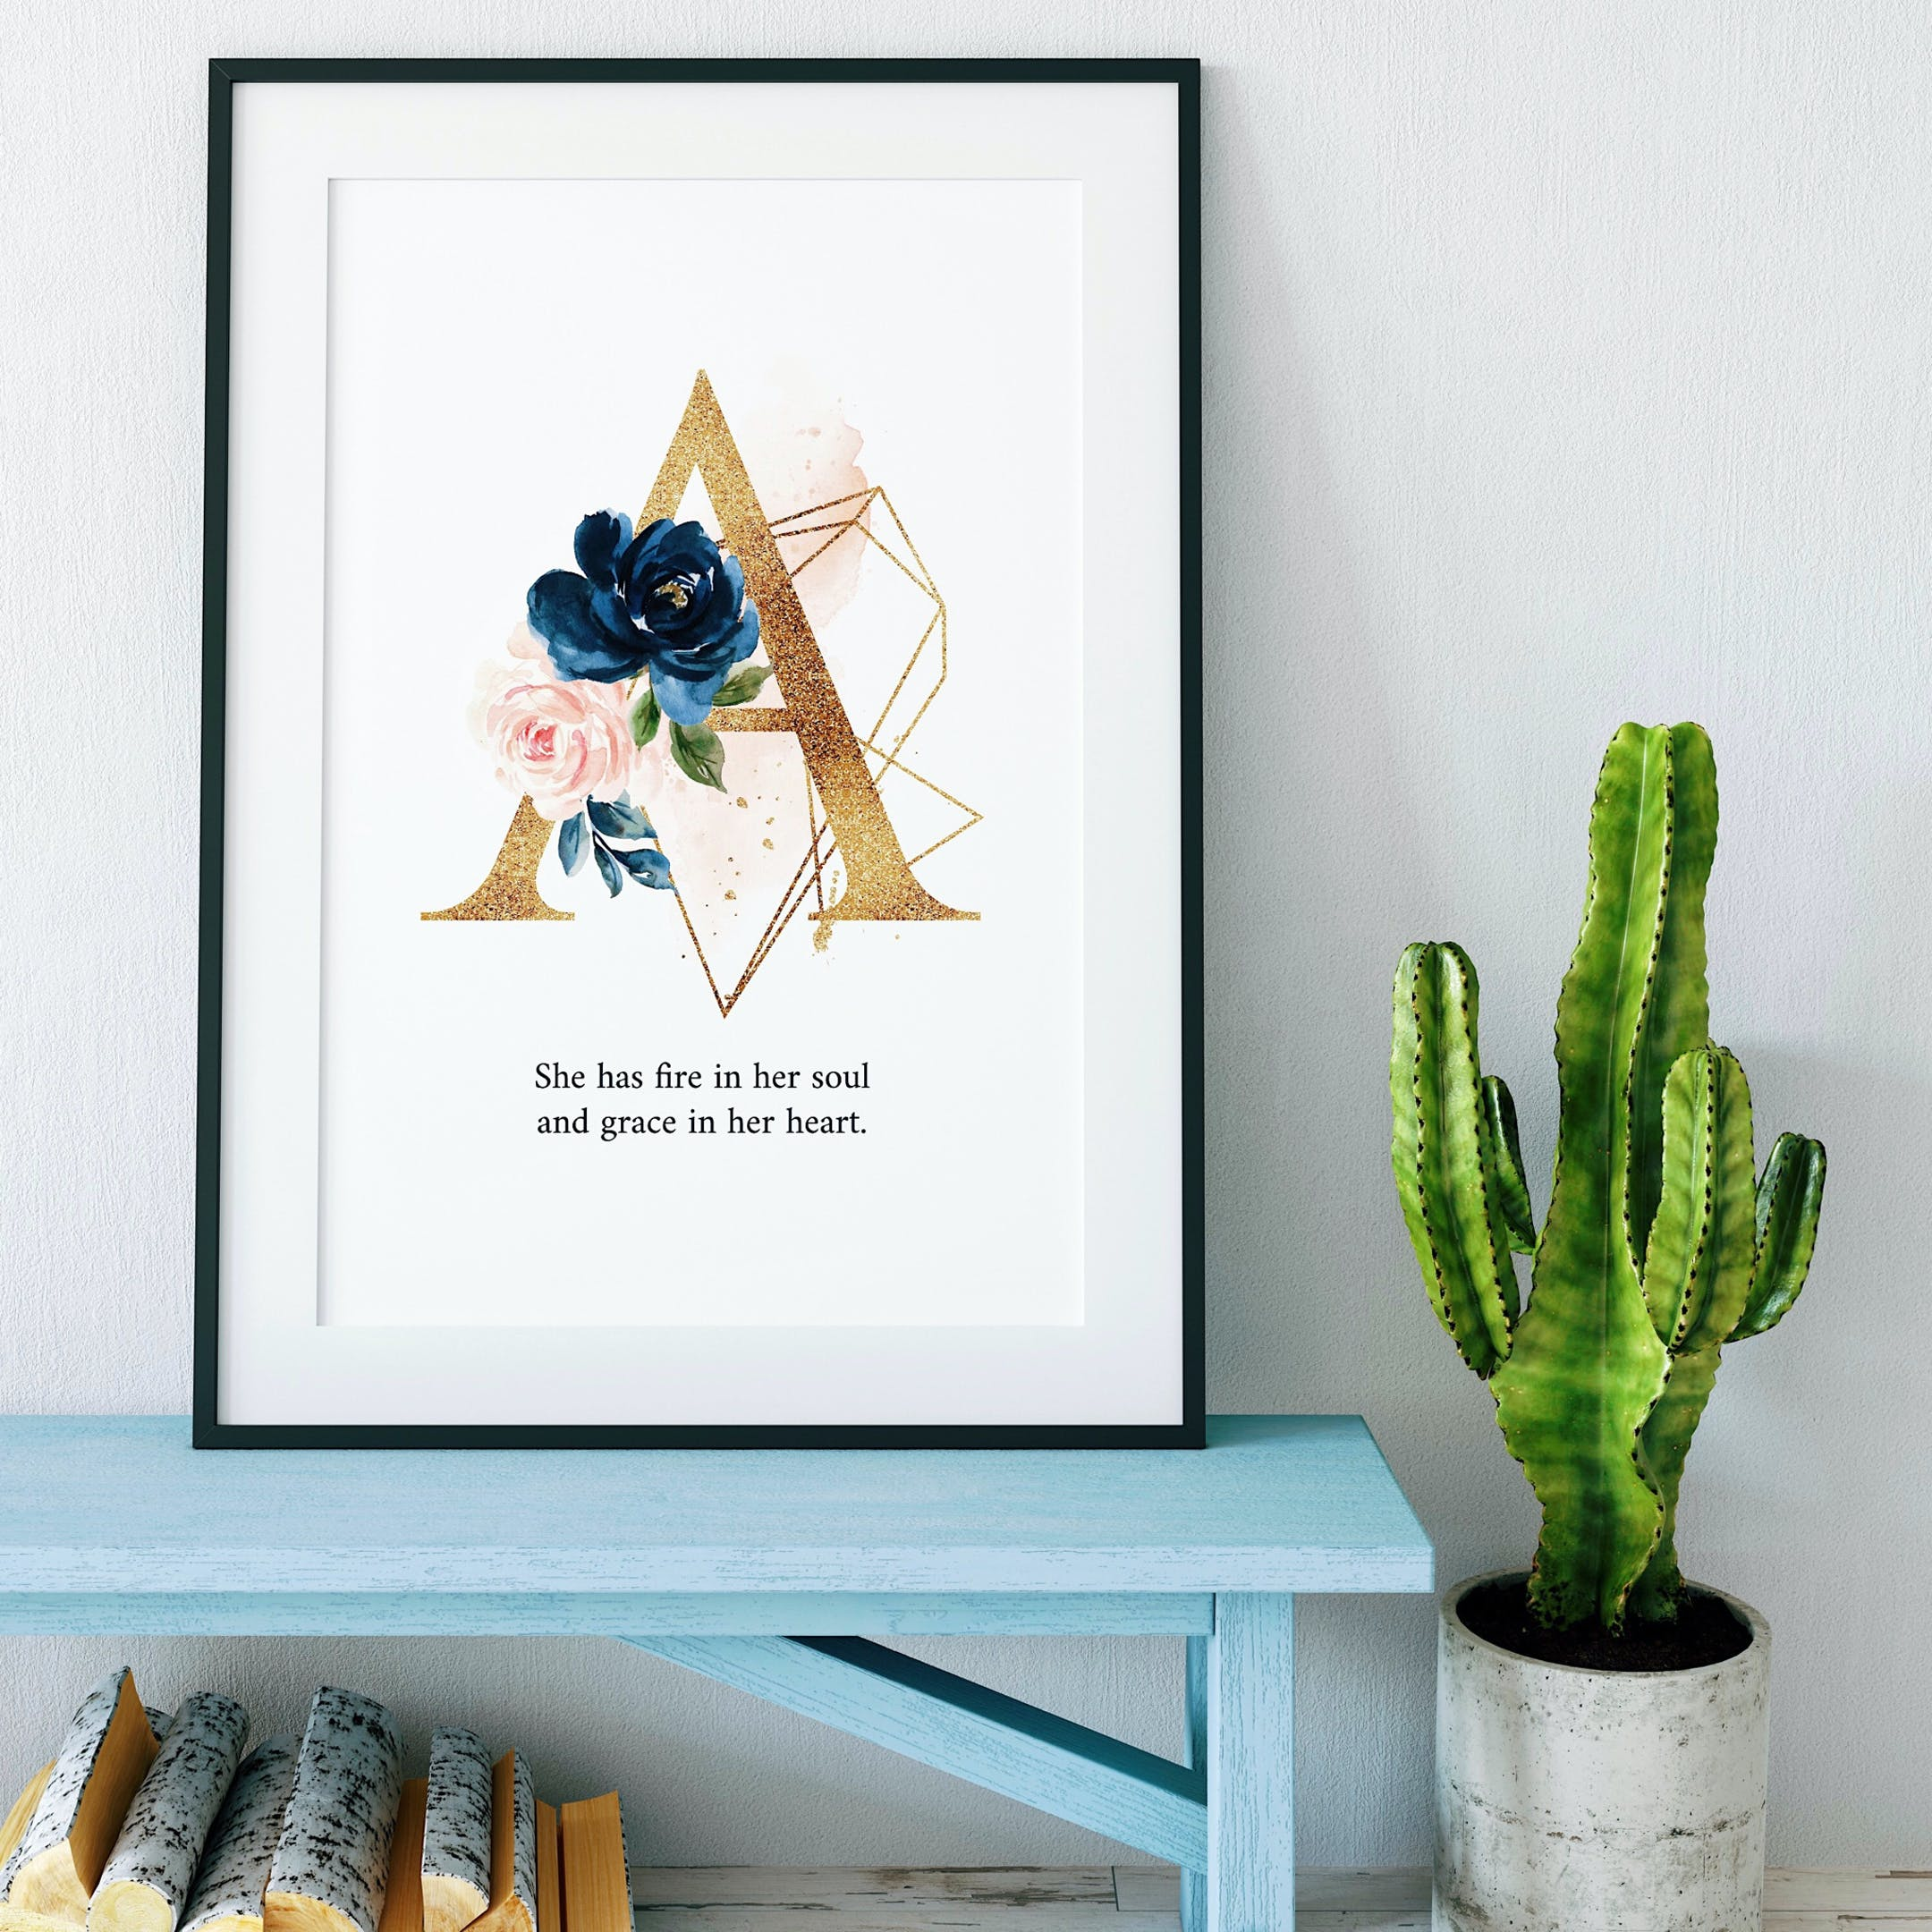 A She Has Fire In Her Soul And Grace In Her Heart Personalised Print - Izzy & Pop